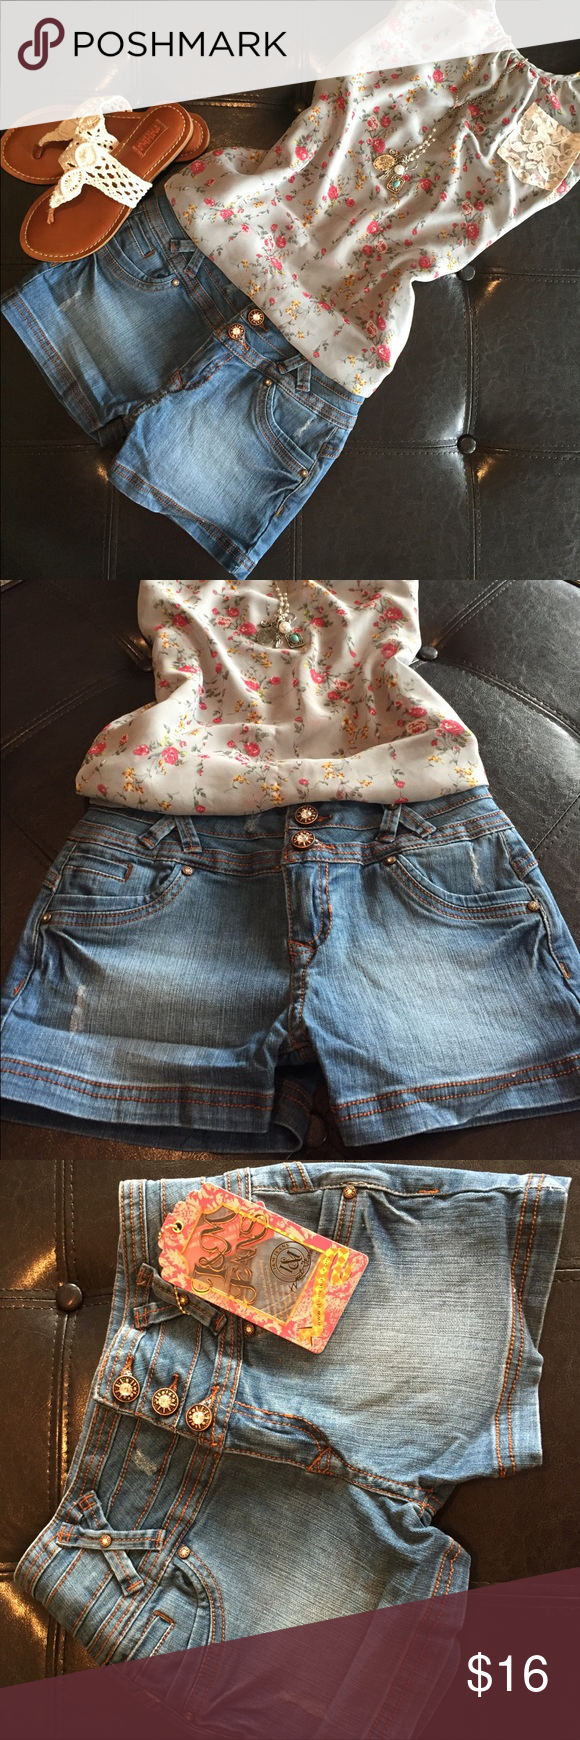 🛍BUTT LIFT DENIM SHORT SHORTS 🛍 🛍BRAND NEW!! Super sexy butt lift blue jean short shorts!! If measurements are needed please comment. 🛍 I & M Jeans  Shorts Jean Shorts